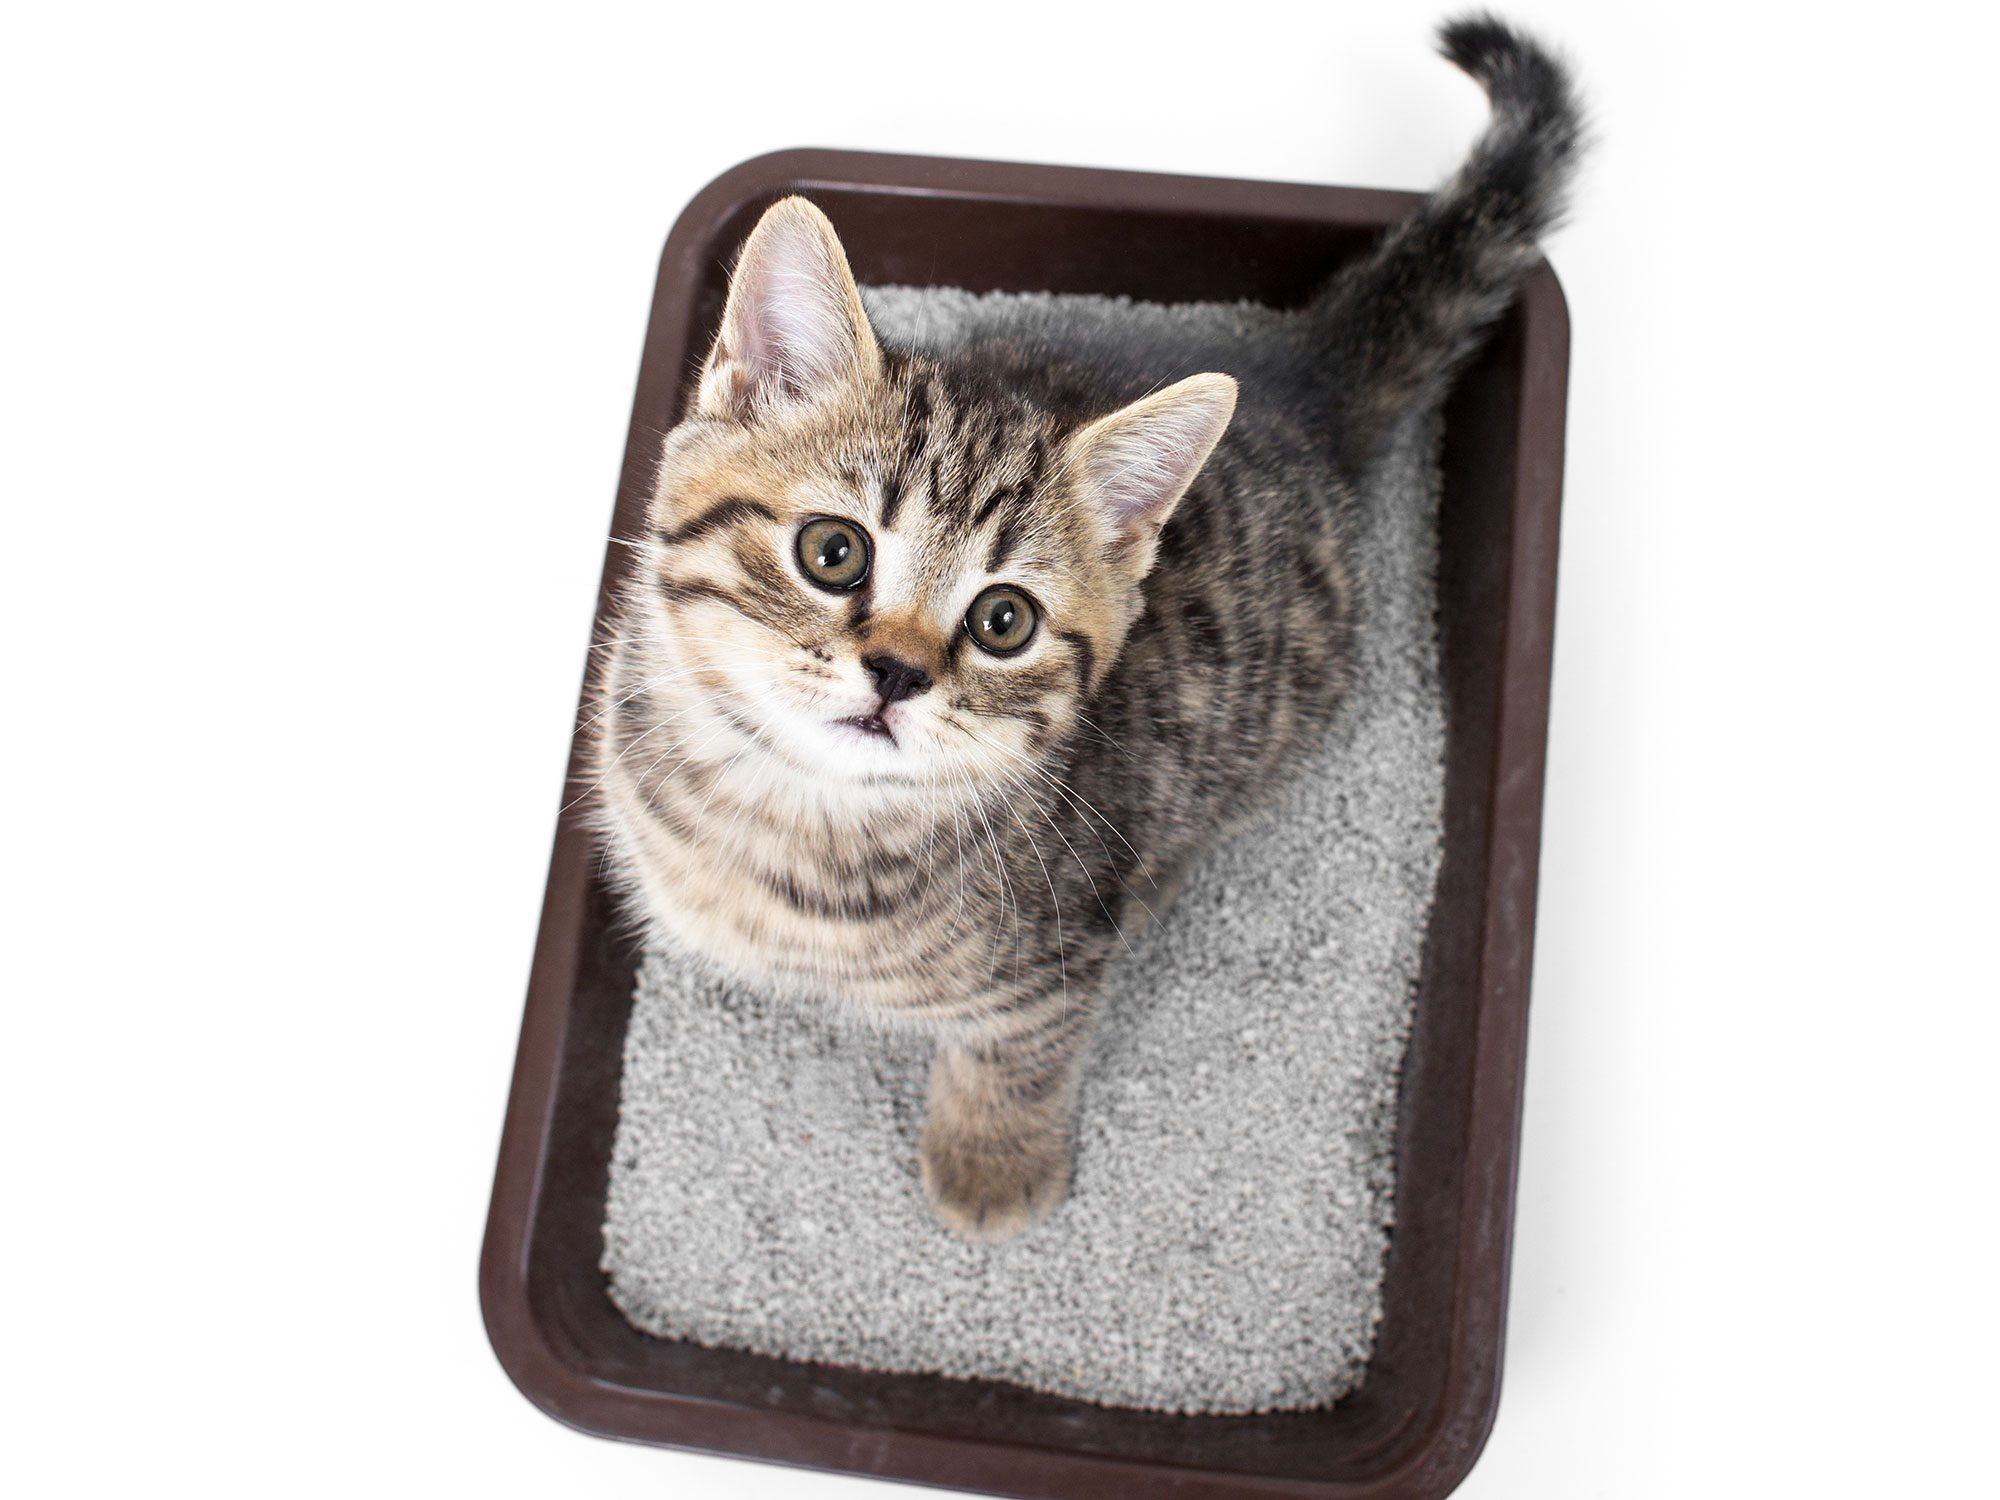 5 Clever New Uses For Kitty Litter